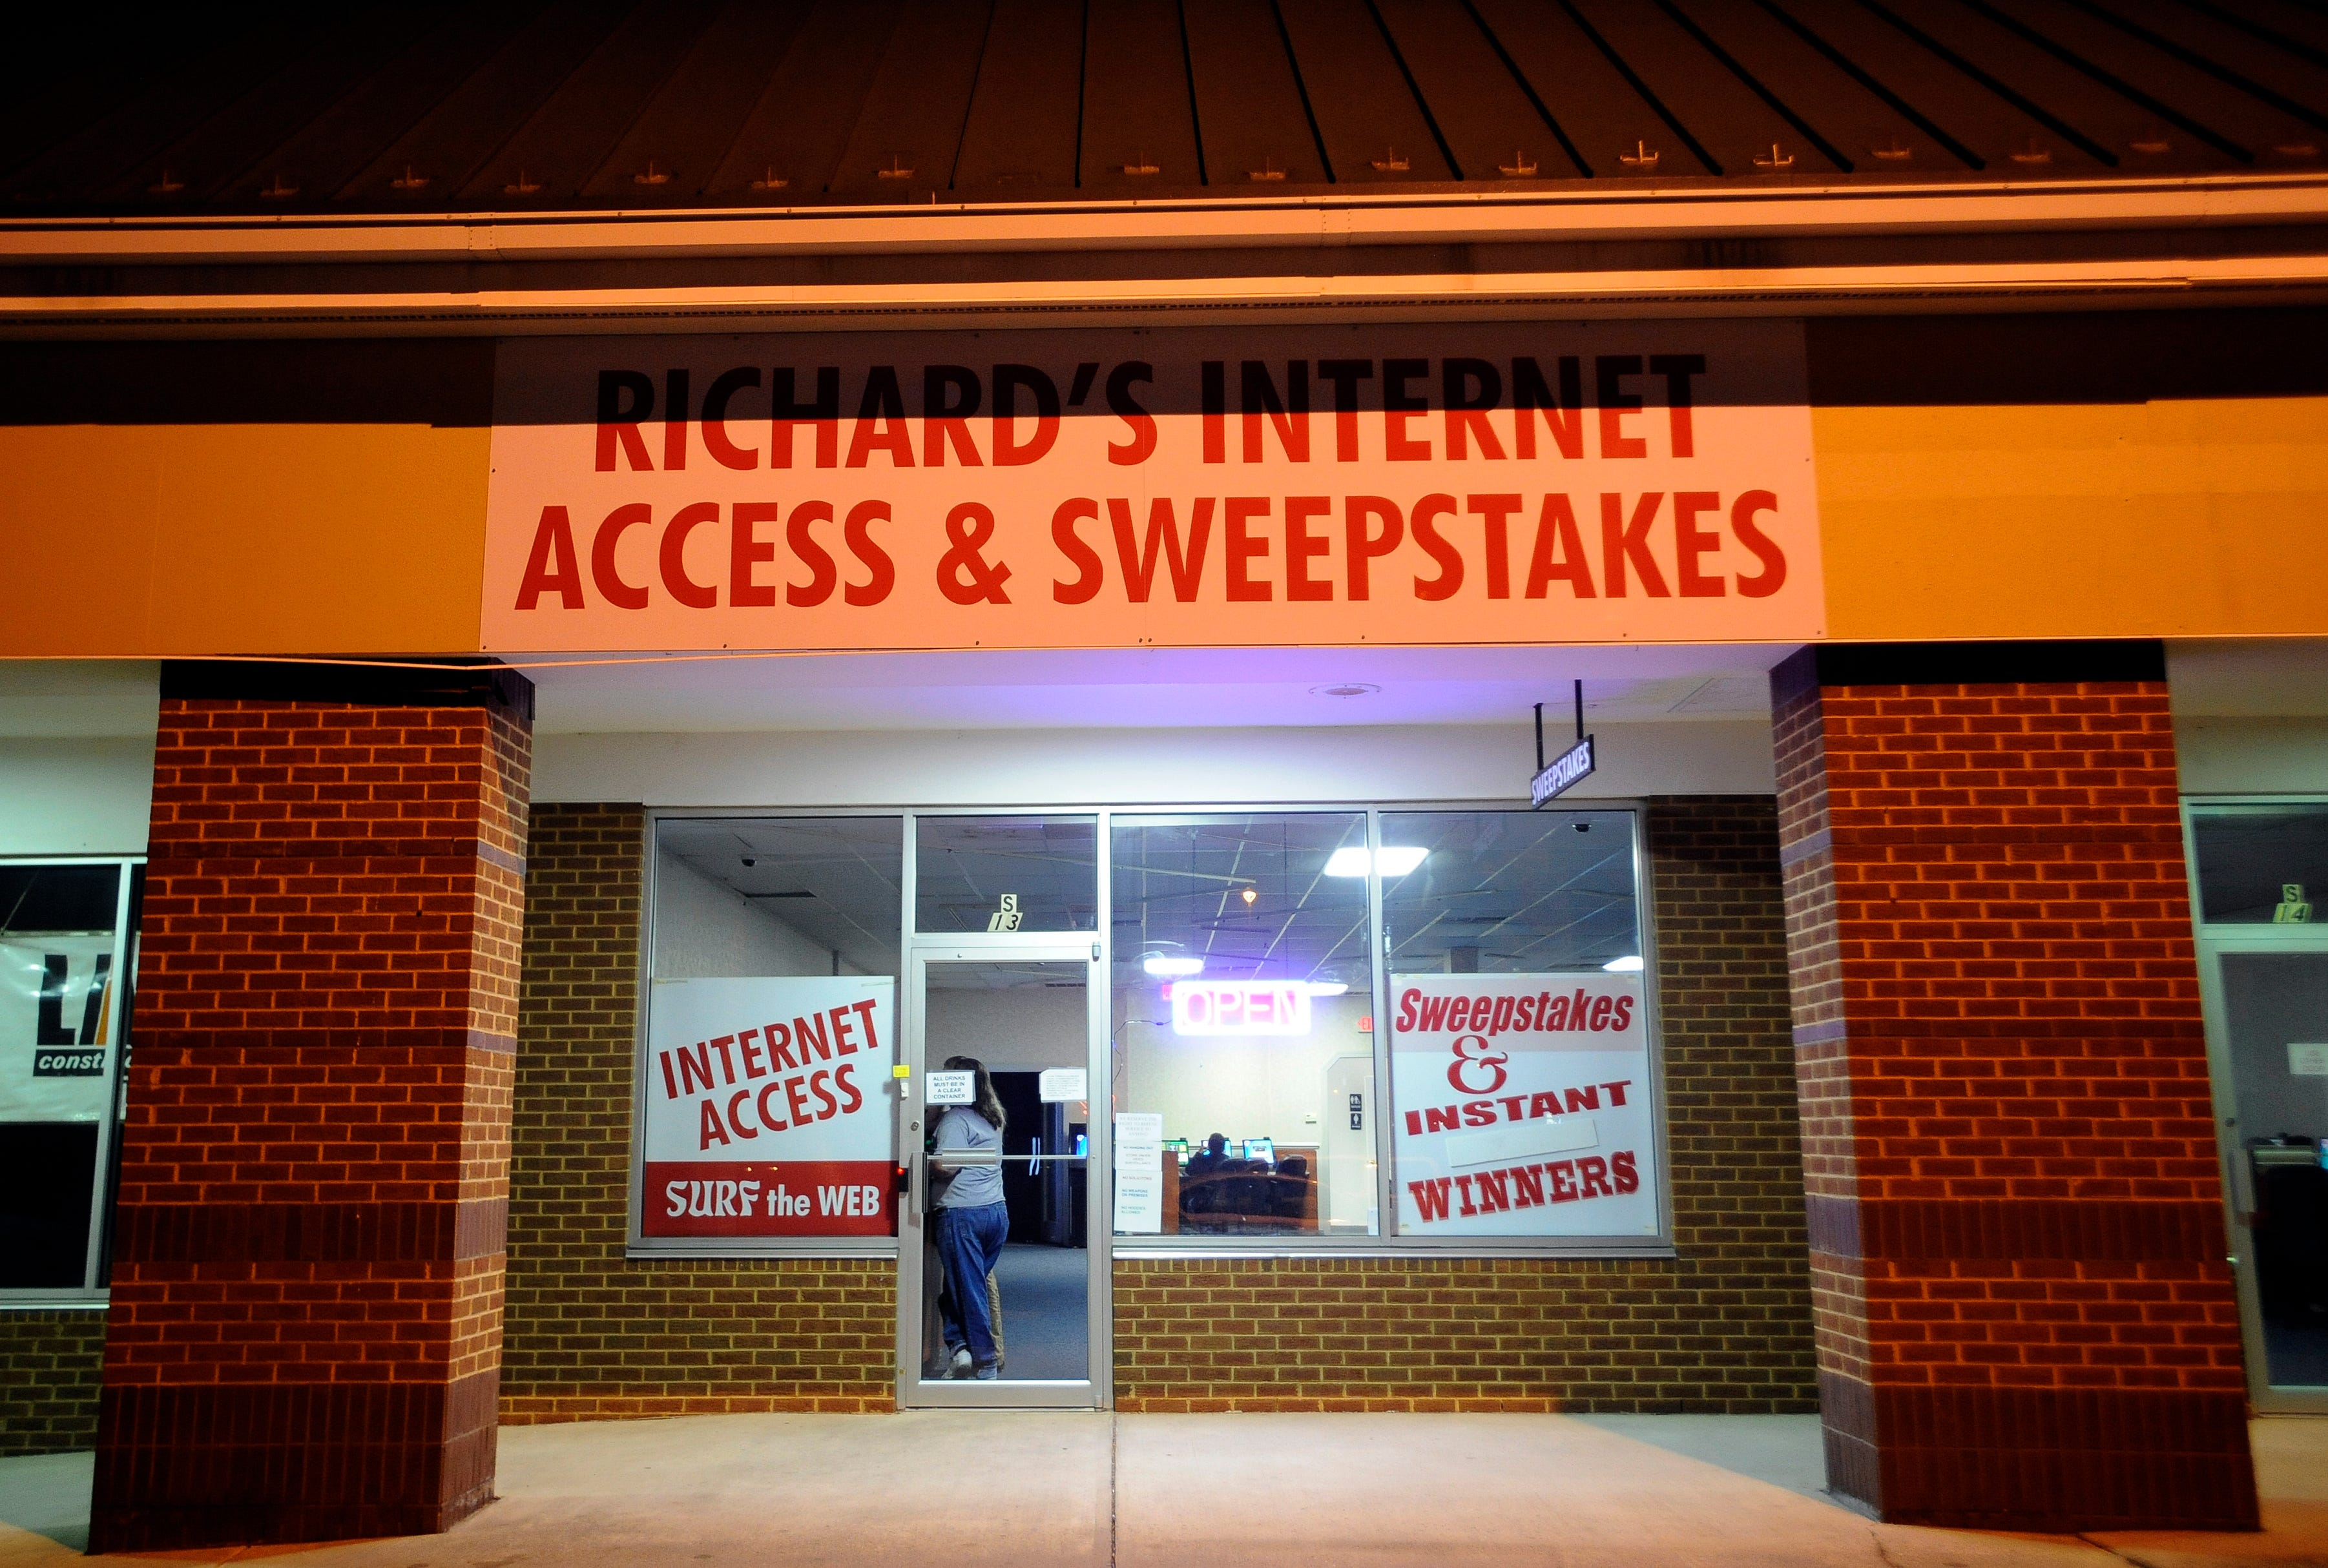 Start at home internet sweepstakes business